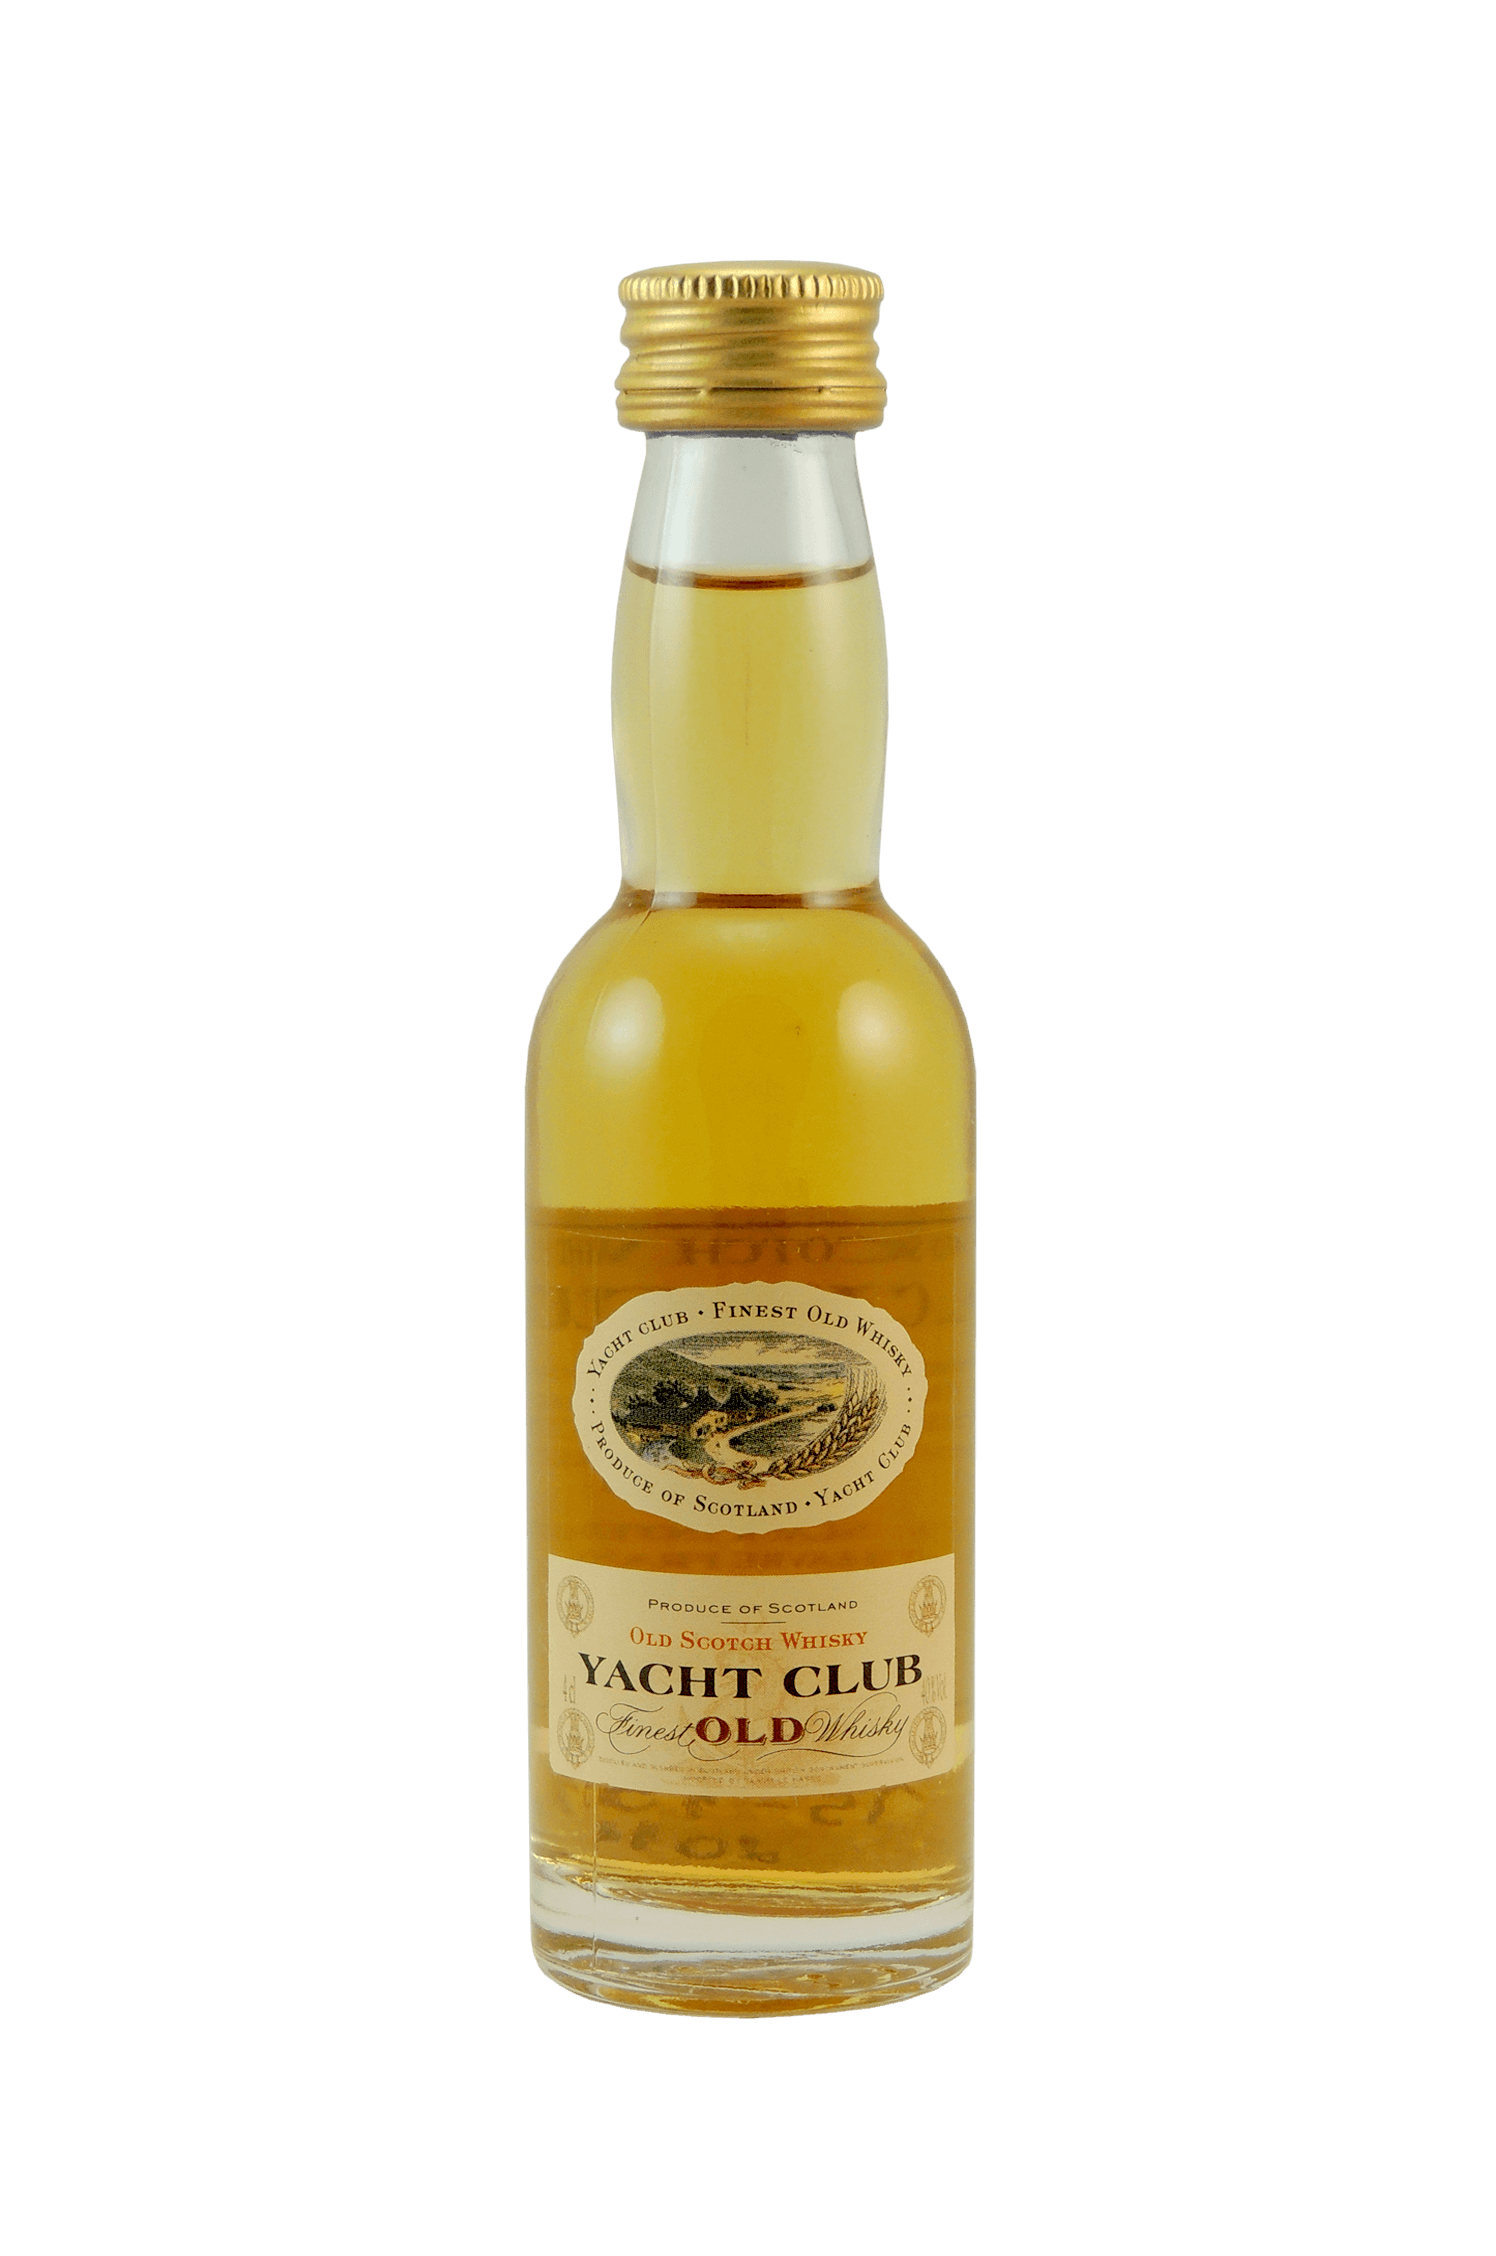 Yacht Club Old Whisky